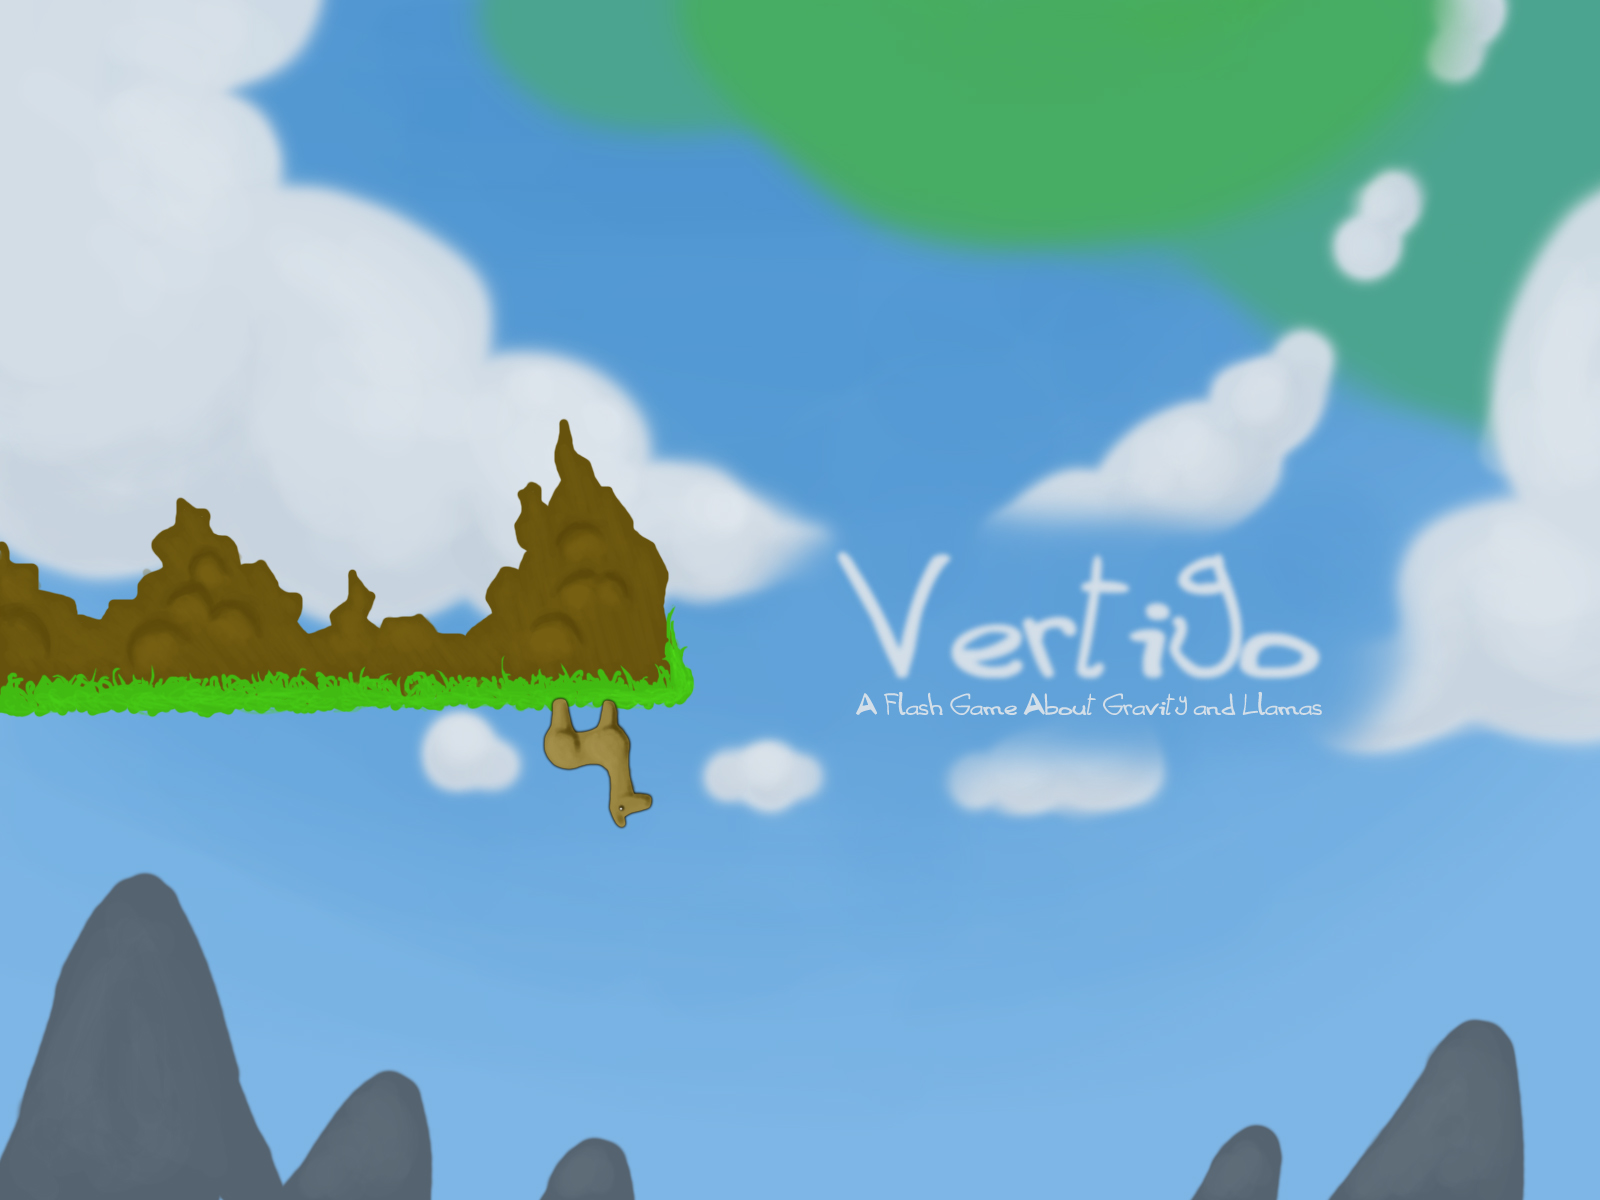 Vertigo Wallpaper : World 1